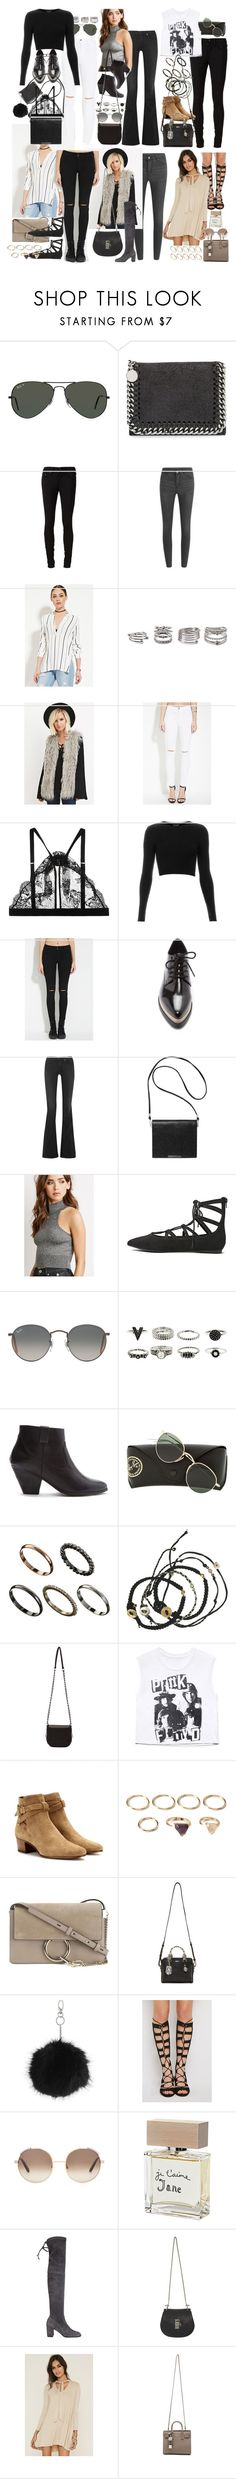 """Inspired with items from forever 21"" by nikka-phillips ❤ liked on Polyvore featuring Ray-Ban, STELLA McCARTNEY, rag & bone/JEAN, Cheap Monday, Forever 21, Mimi Holliday by Damaris, Topshop, rag & bone, Monki and ASOS"